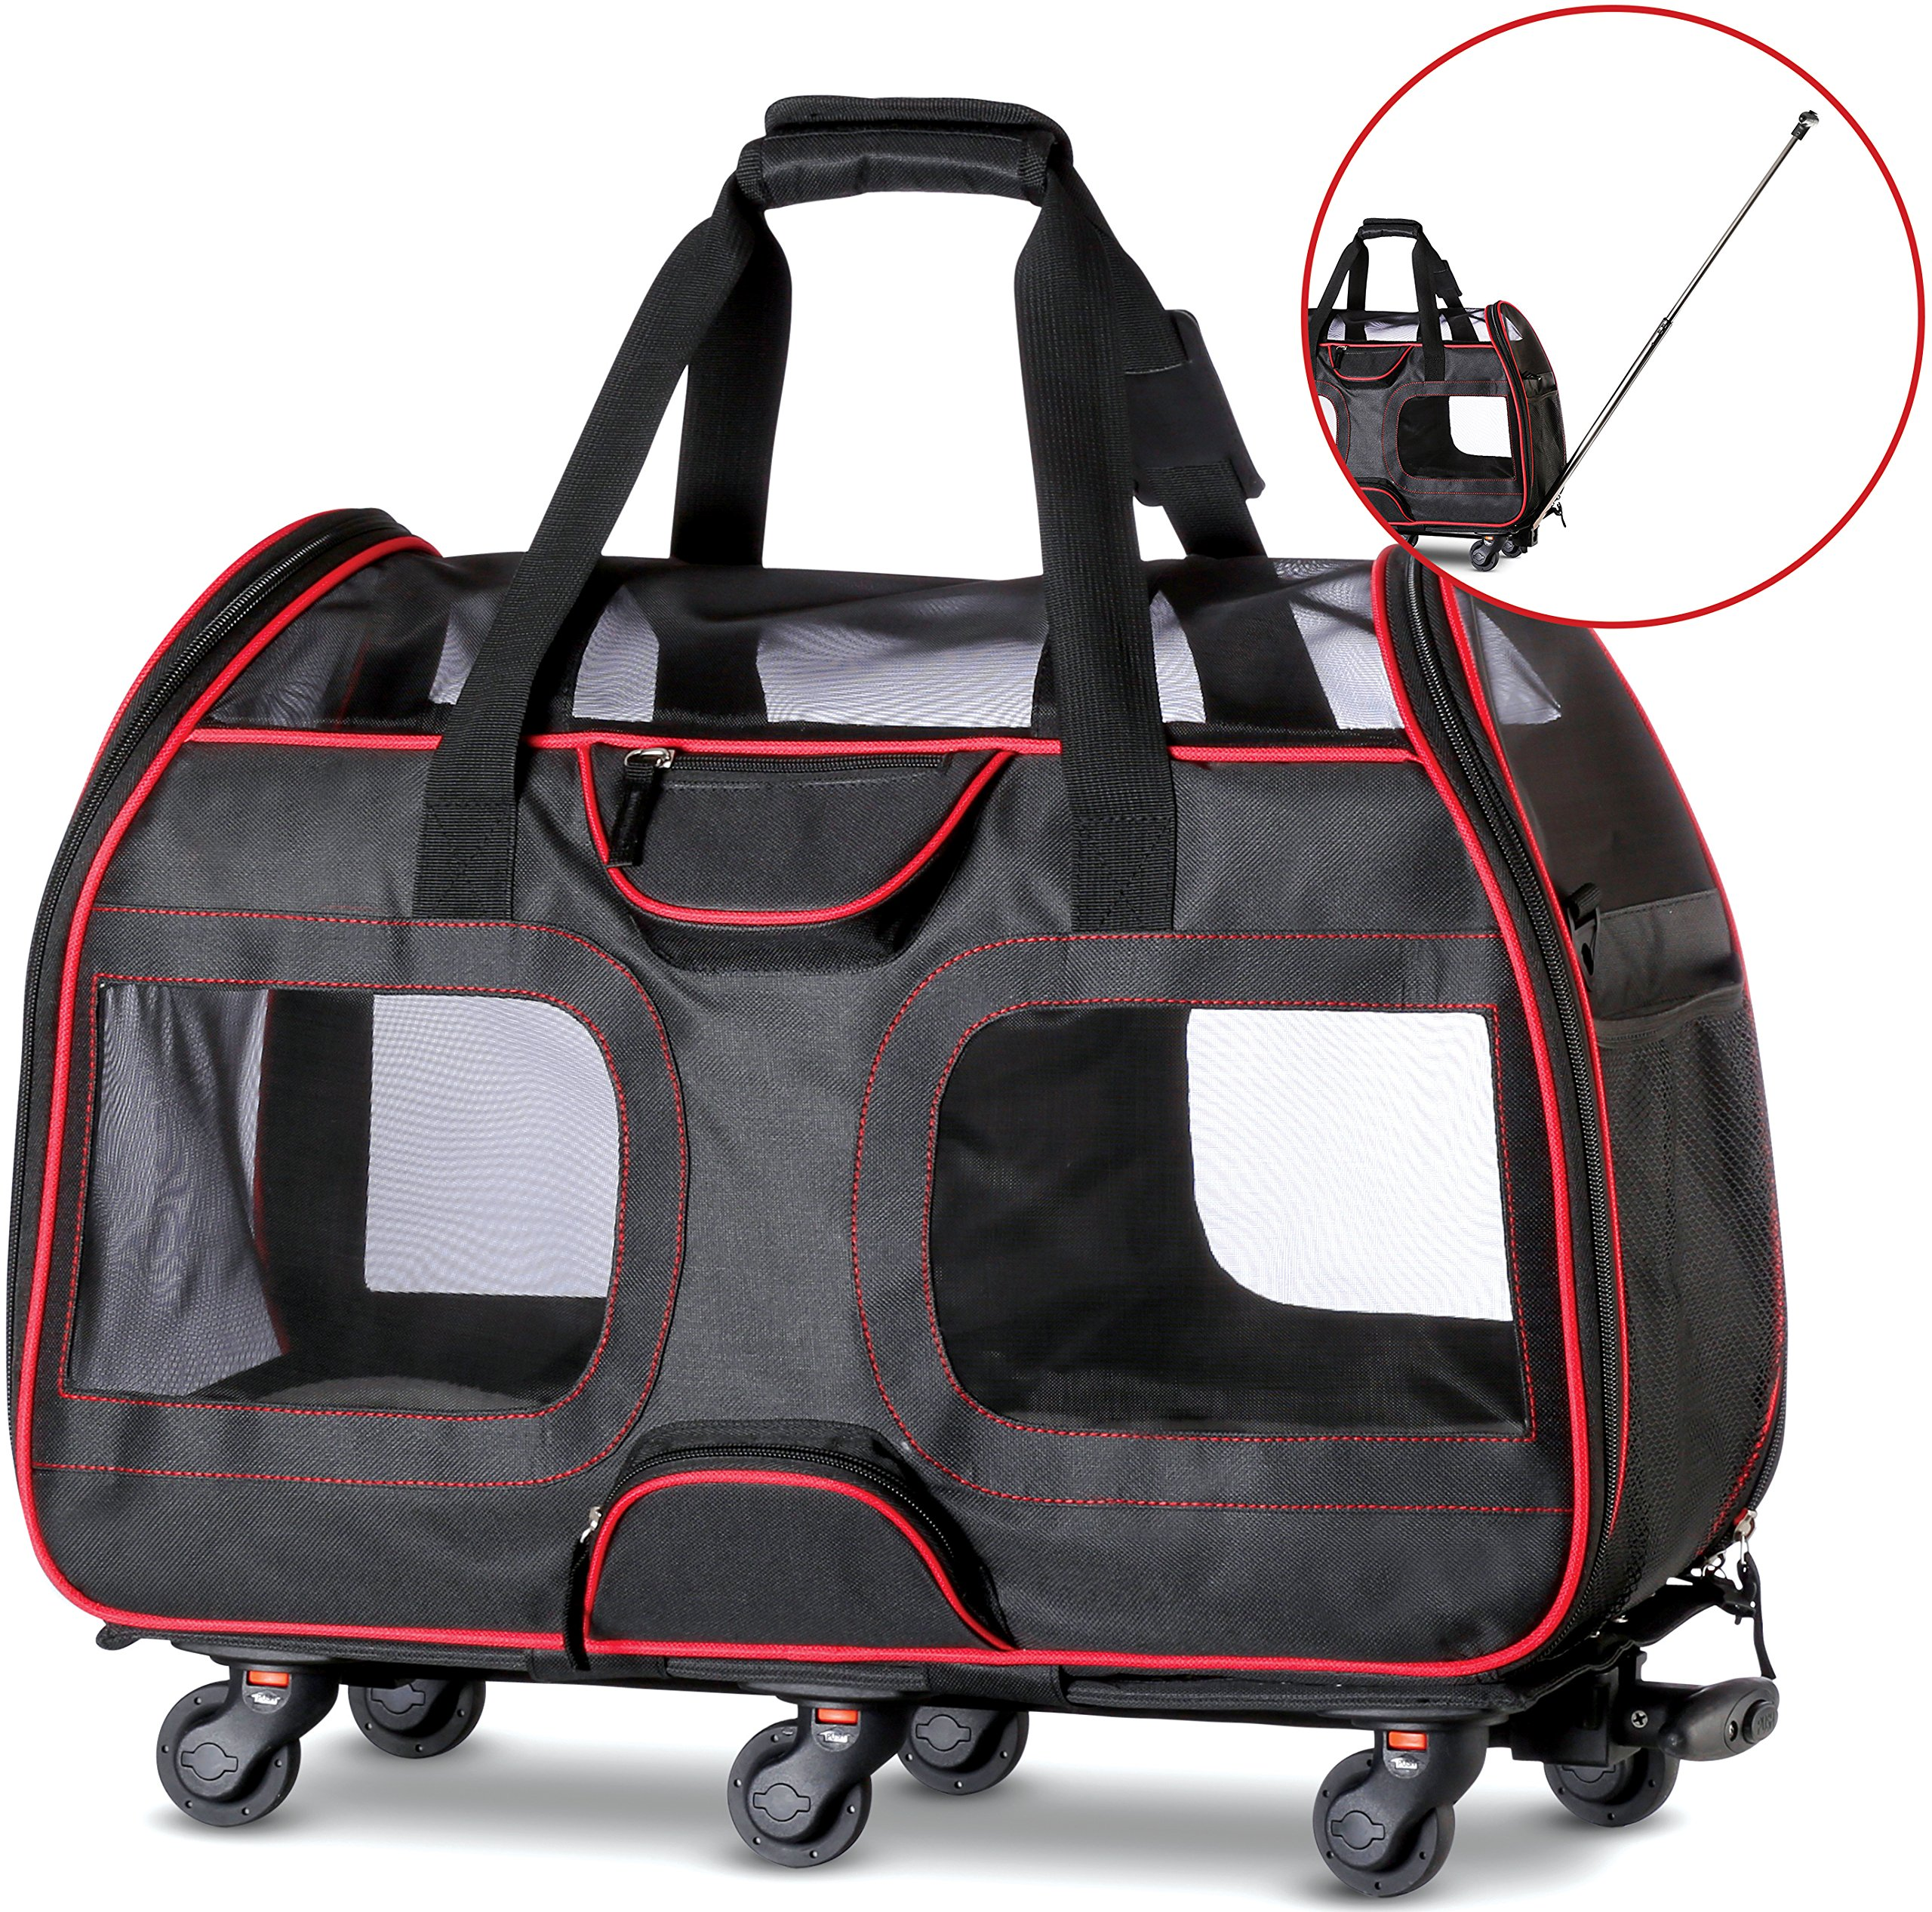 WPS Airline Approved Removable Wheeled Pet Carrier for Small Pets. Upgraded Structural Design for Ultimate Strength, Features Mesh Panels & Plush Mat. Compact and Durable. 19''x22''x11'' (Black) by WPS